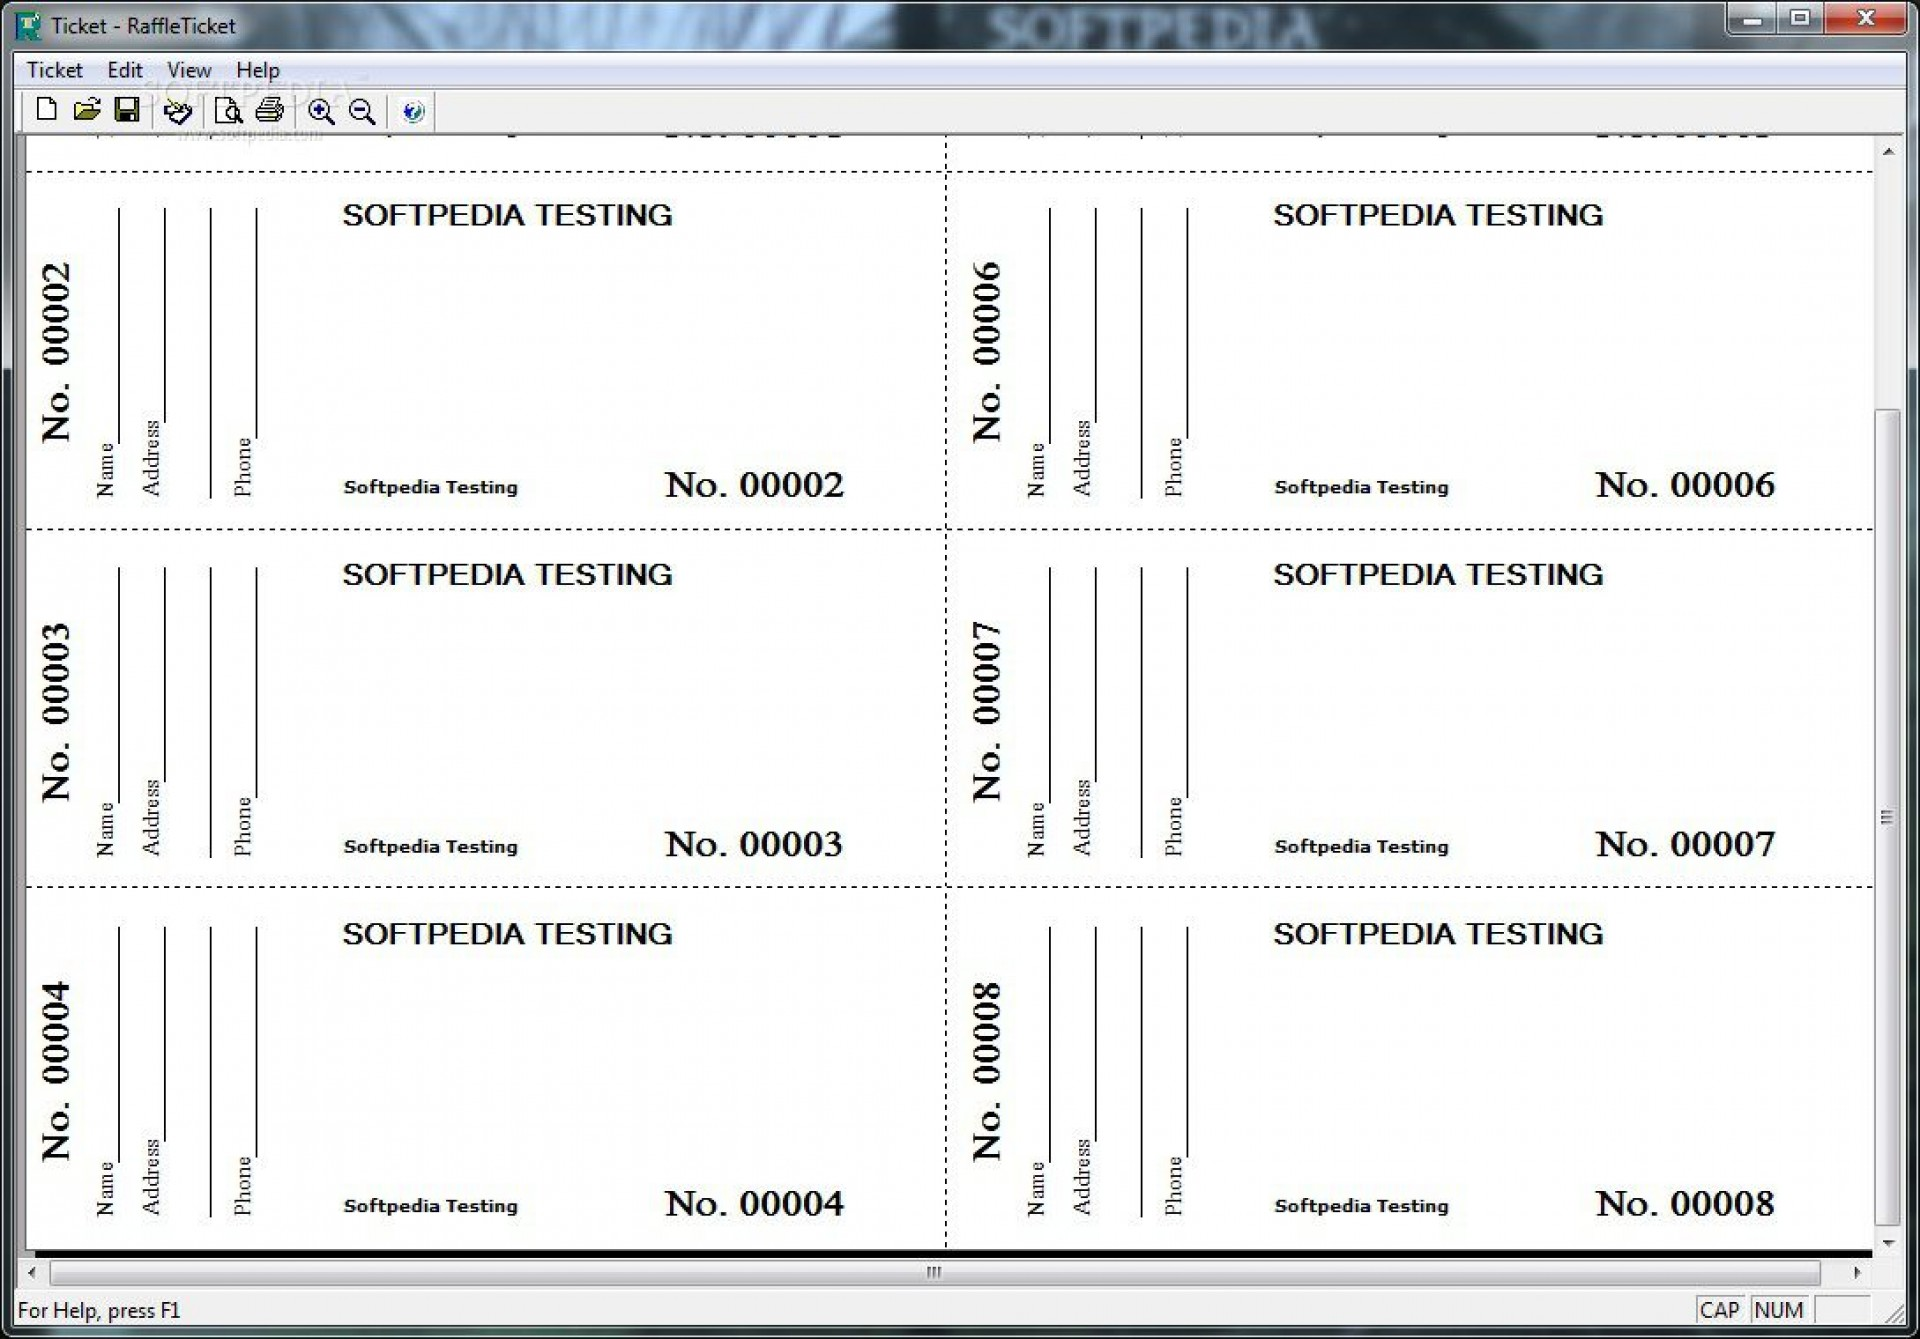 006 Unique Free Raffle Ticket Template Image  Word 10 Per Page For Mac Download1920